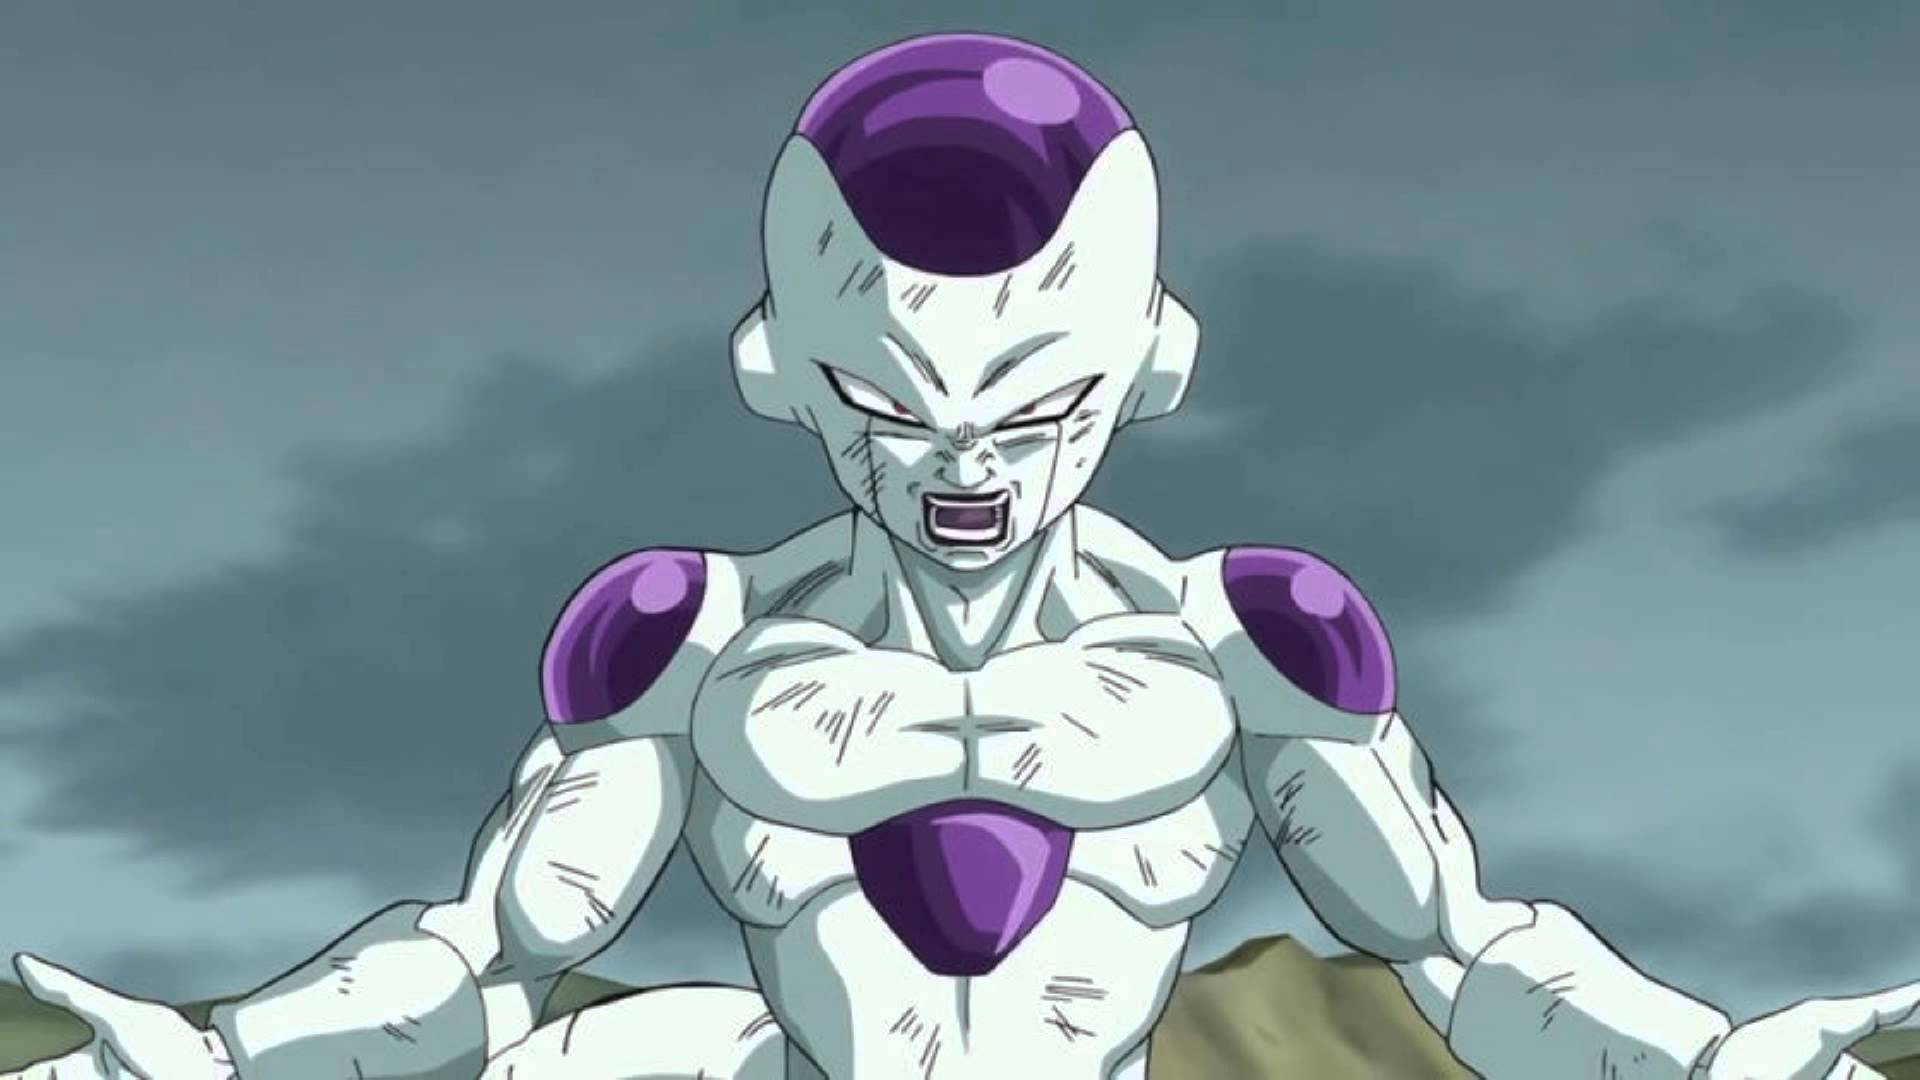 Dragon Ball Z Frieza Pictures - HD Wallpapers | Wallpapers ...